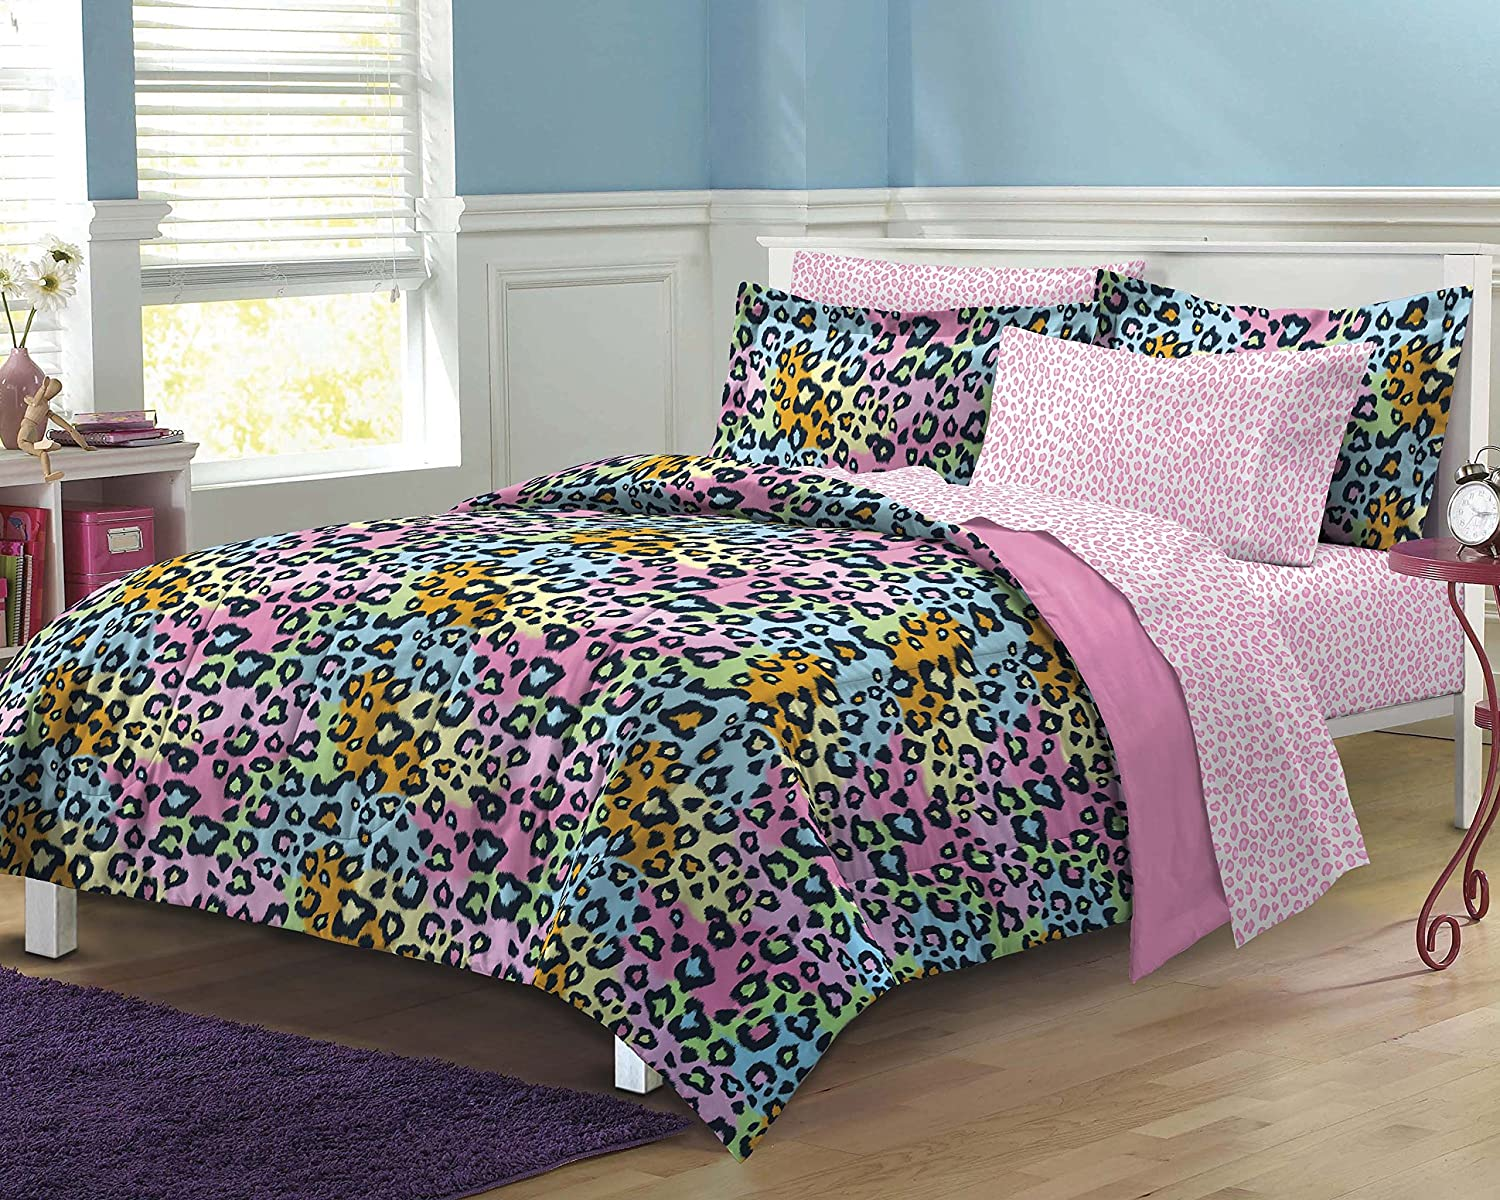 My Room Neon Leopard Ultra Soft Microfiber Girls Comforter Set, Multi-Colored, Full